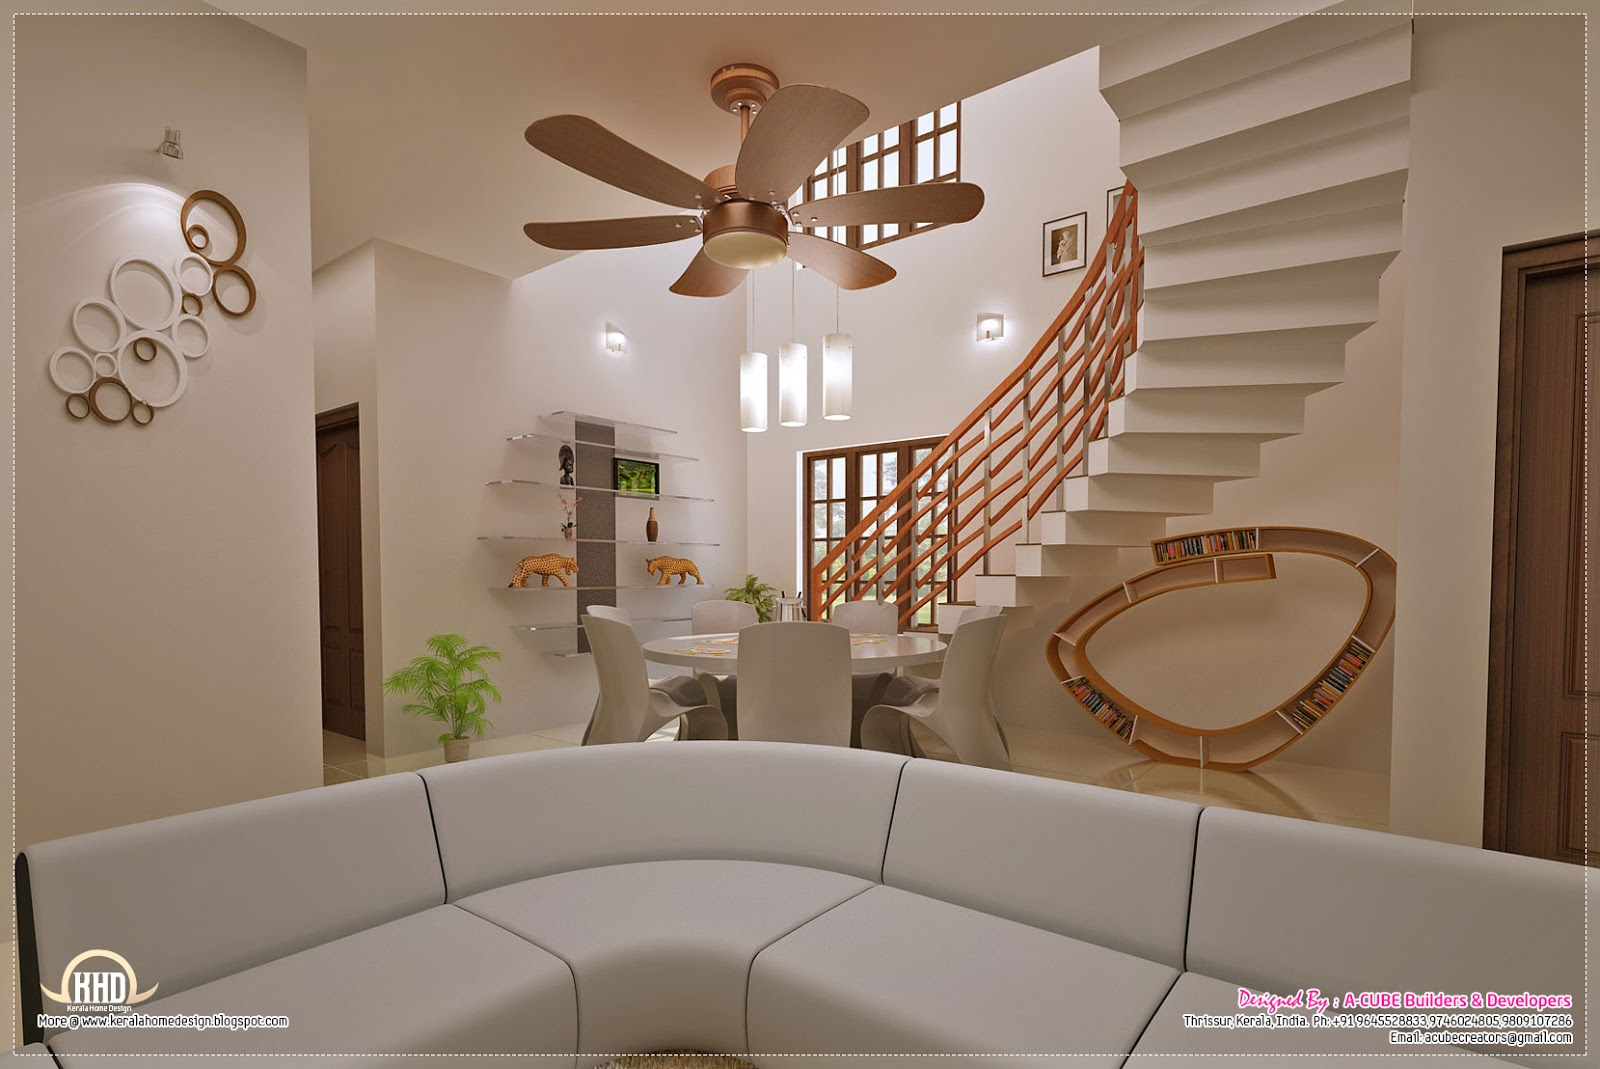 Awesome interior decoration ideas